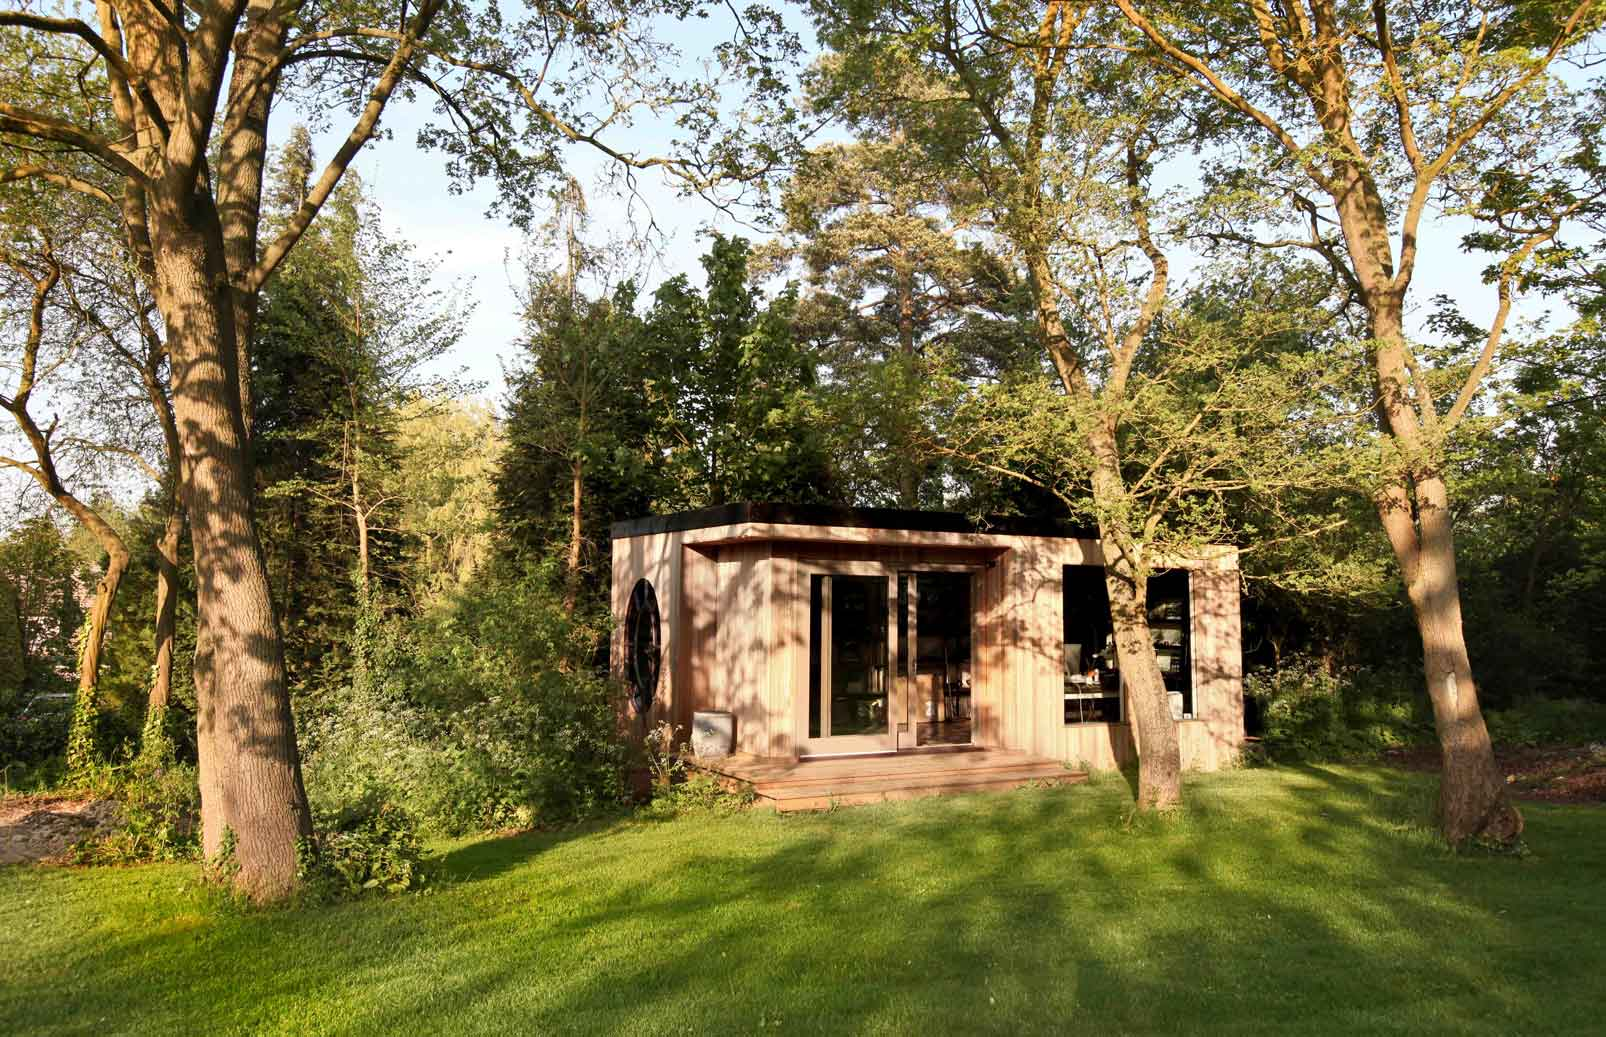 Find a builder who can help you build an interesting garden room